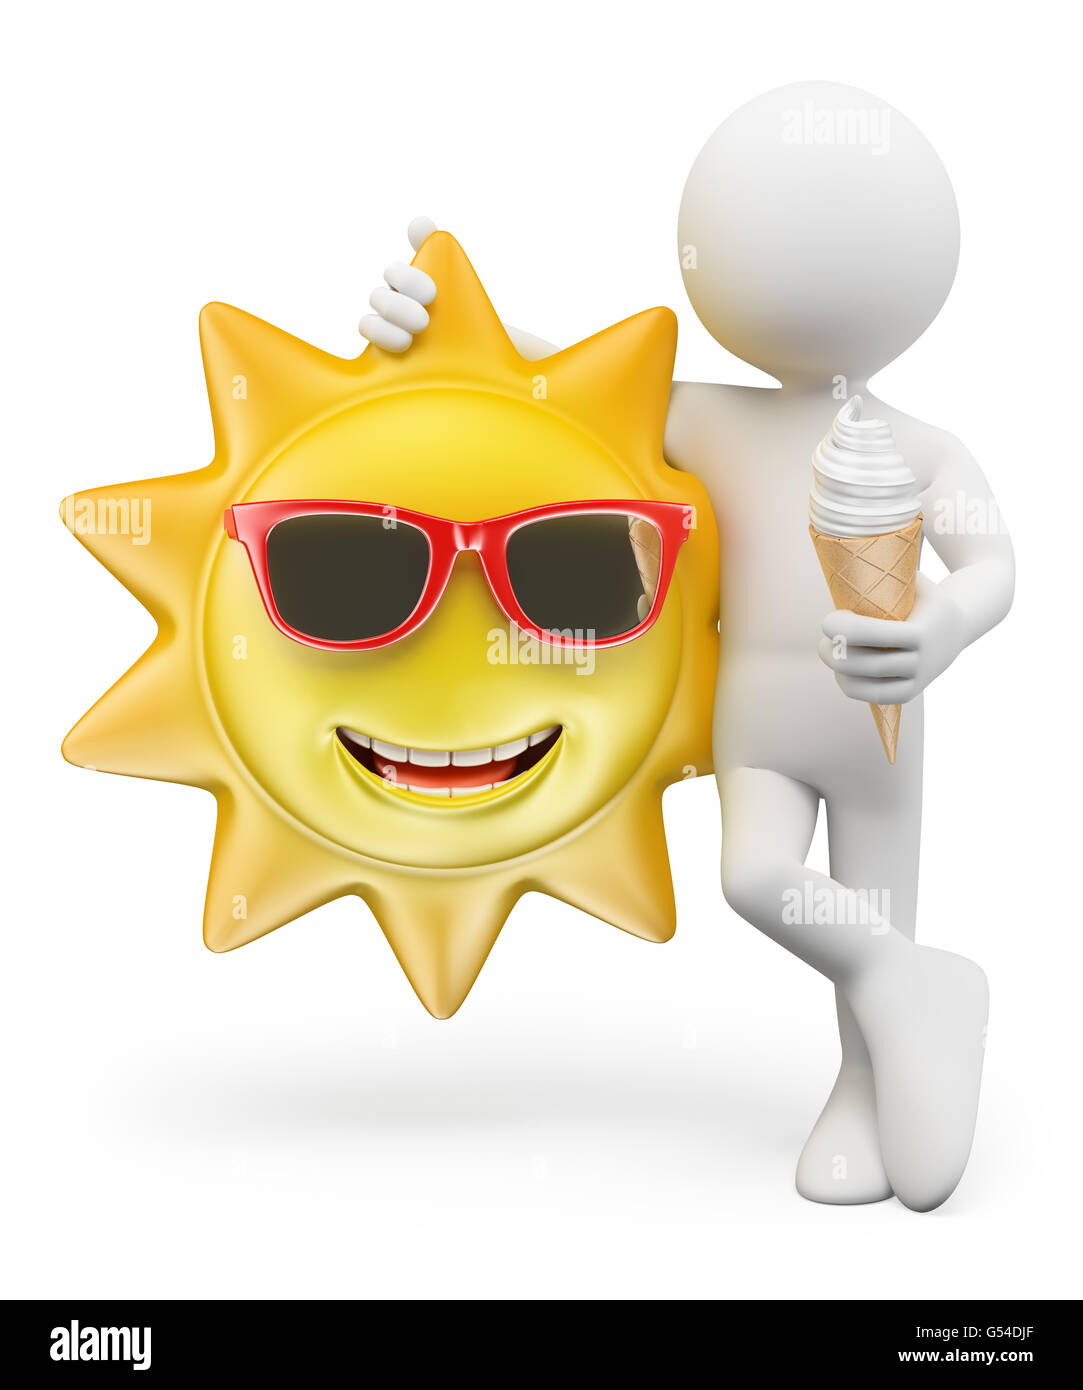 Smiling sun images - 3d White People Summer Ice Cream Smiling Sun Isolated White Background